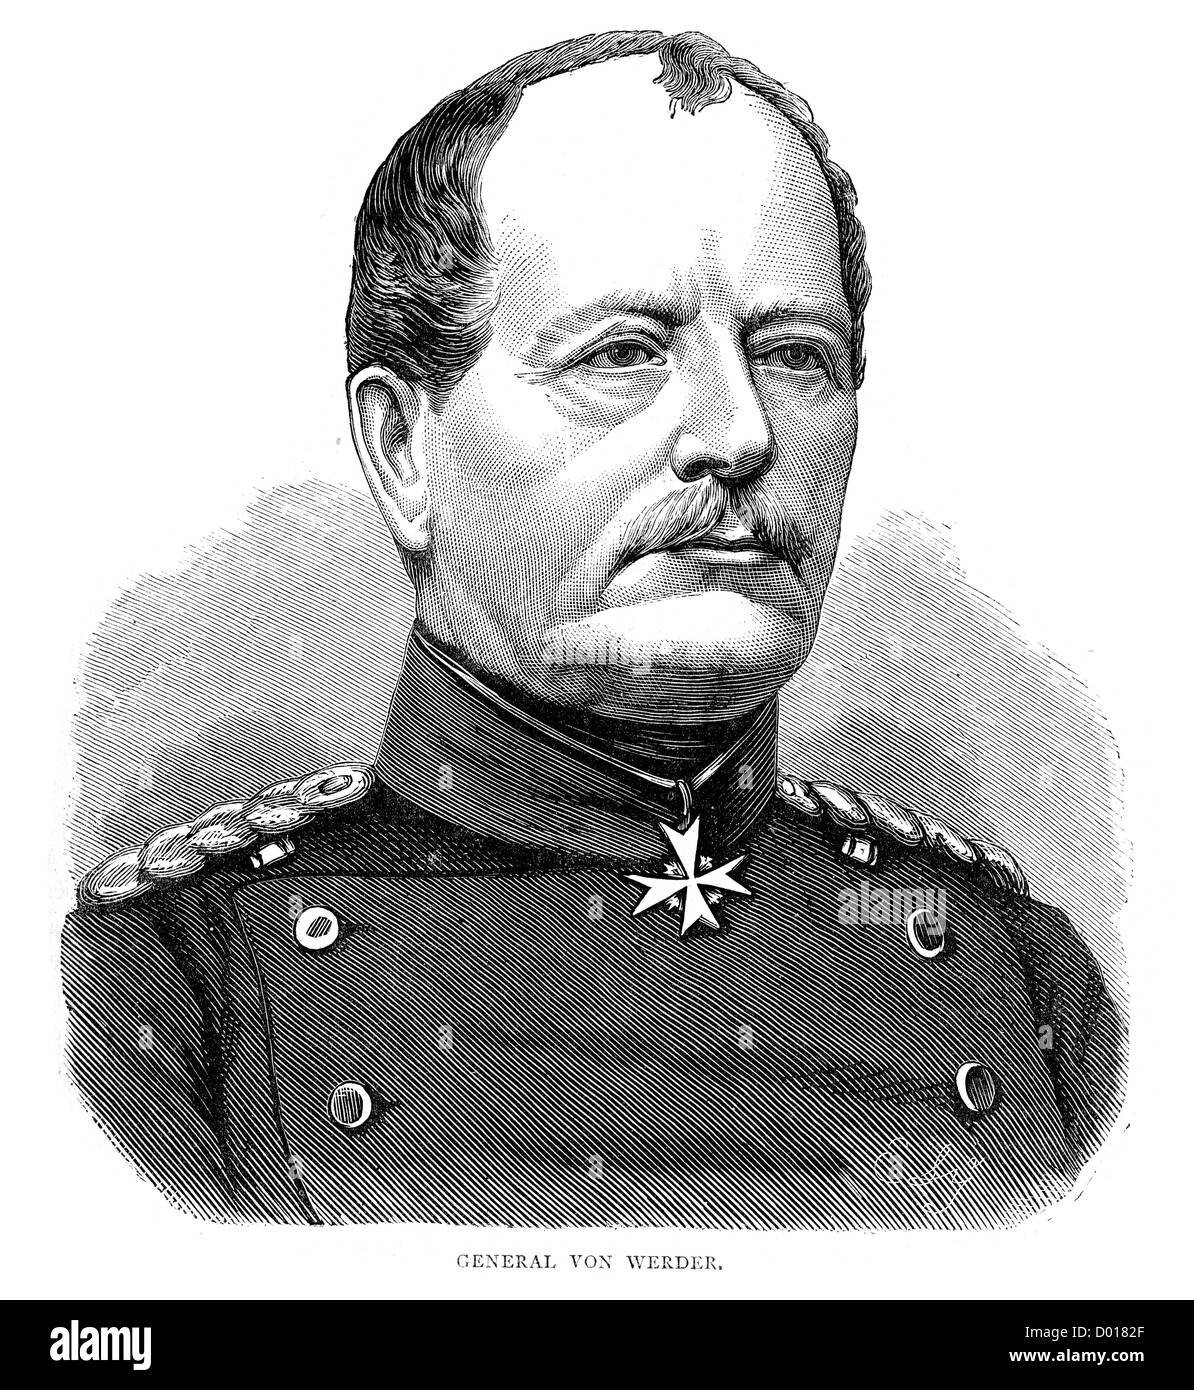 August von Werder, a Prussian general during the Franco Prussian War - Stock Image